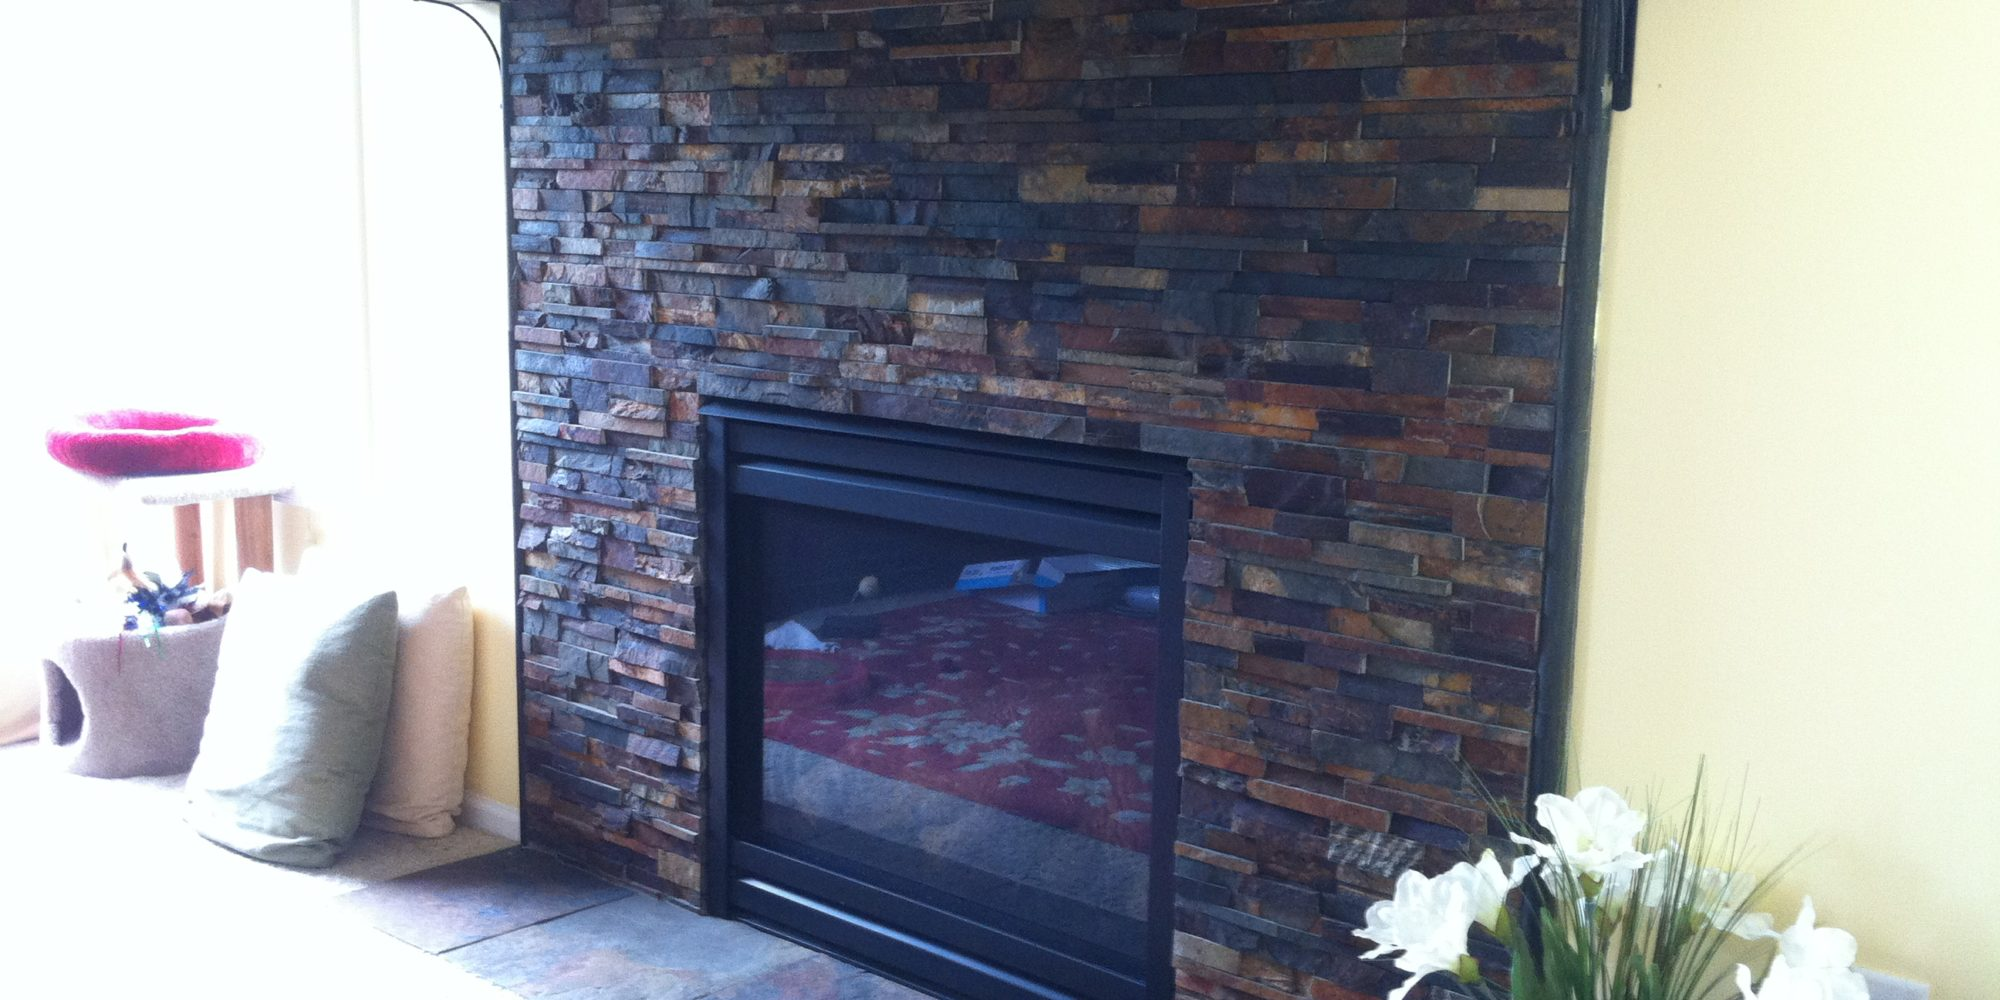 Fireplace tile installation | TOUCHDOWN TILE